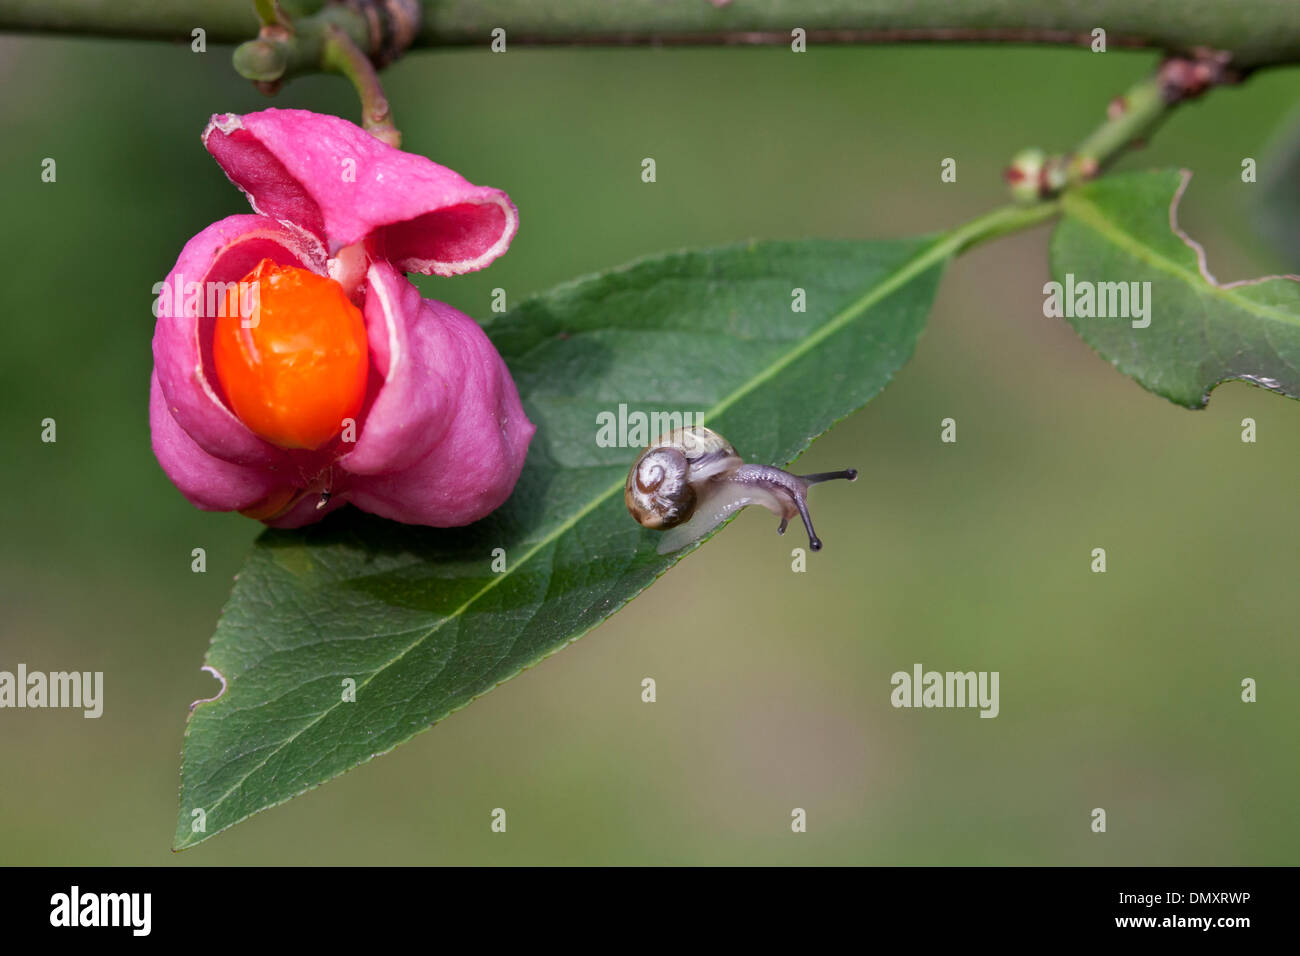 Little snail and European spindle / common spindle (Euonymus europaeus) close-up of ripe fruit showing bright orange seeds - Stock Image